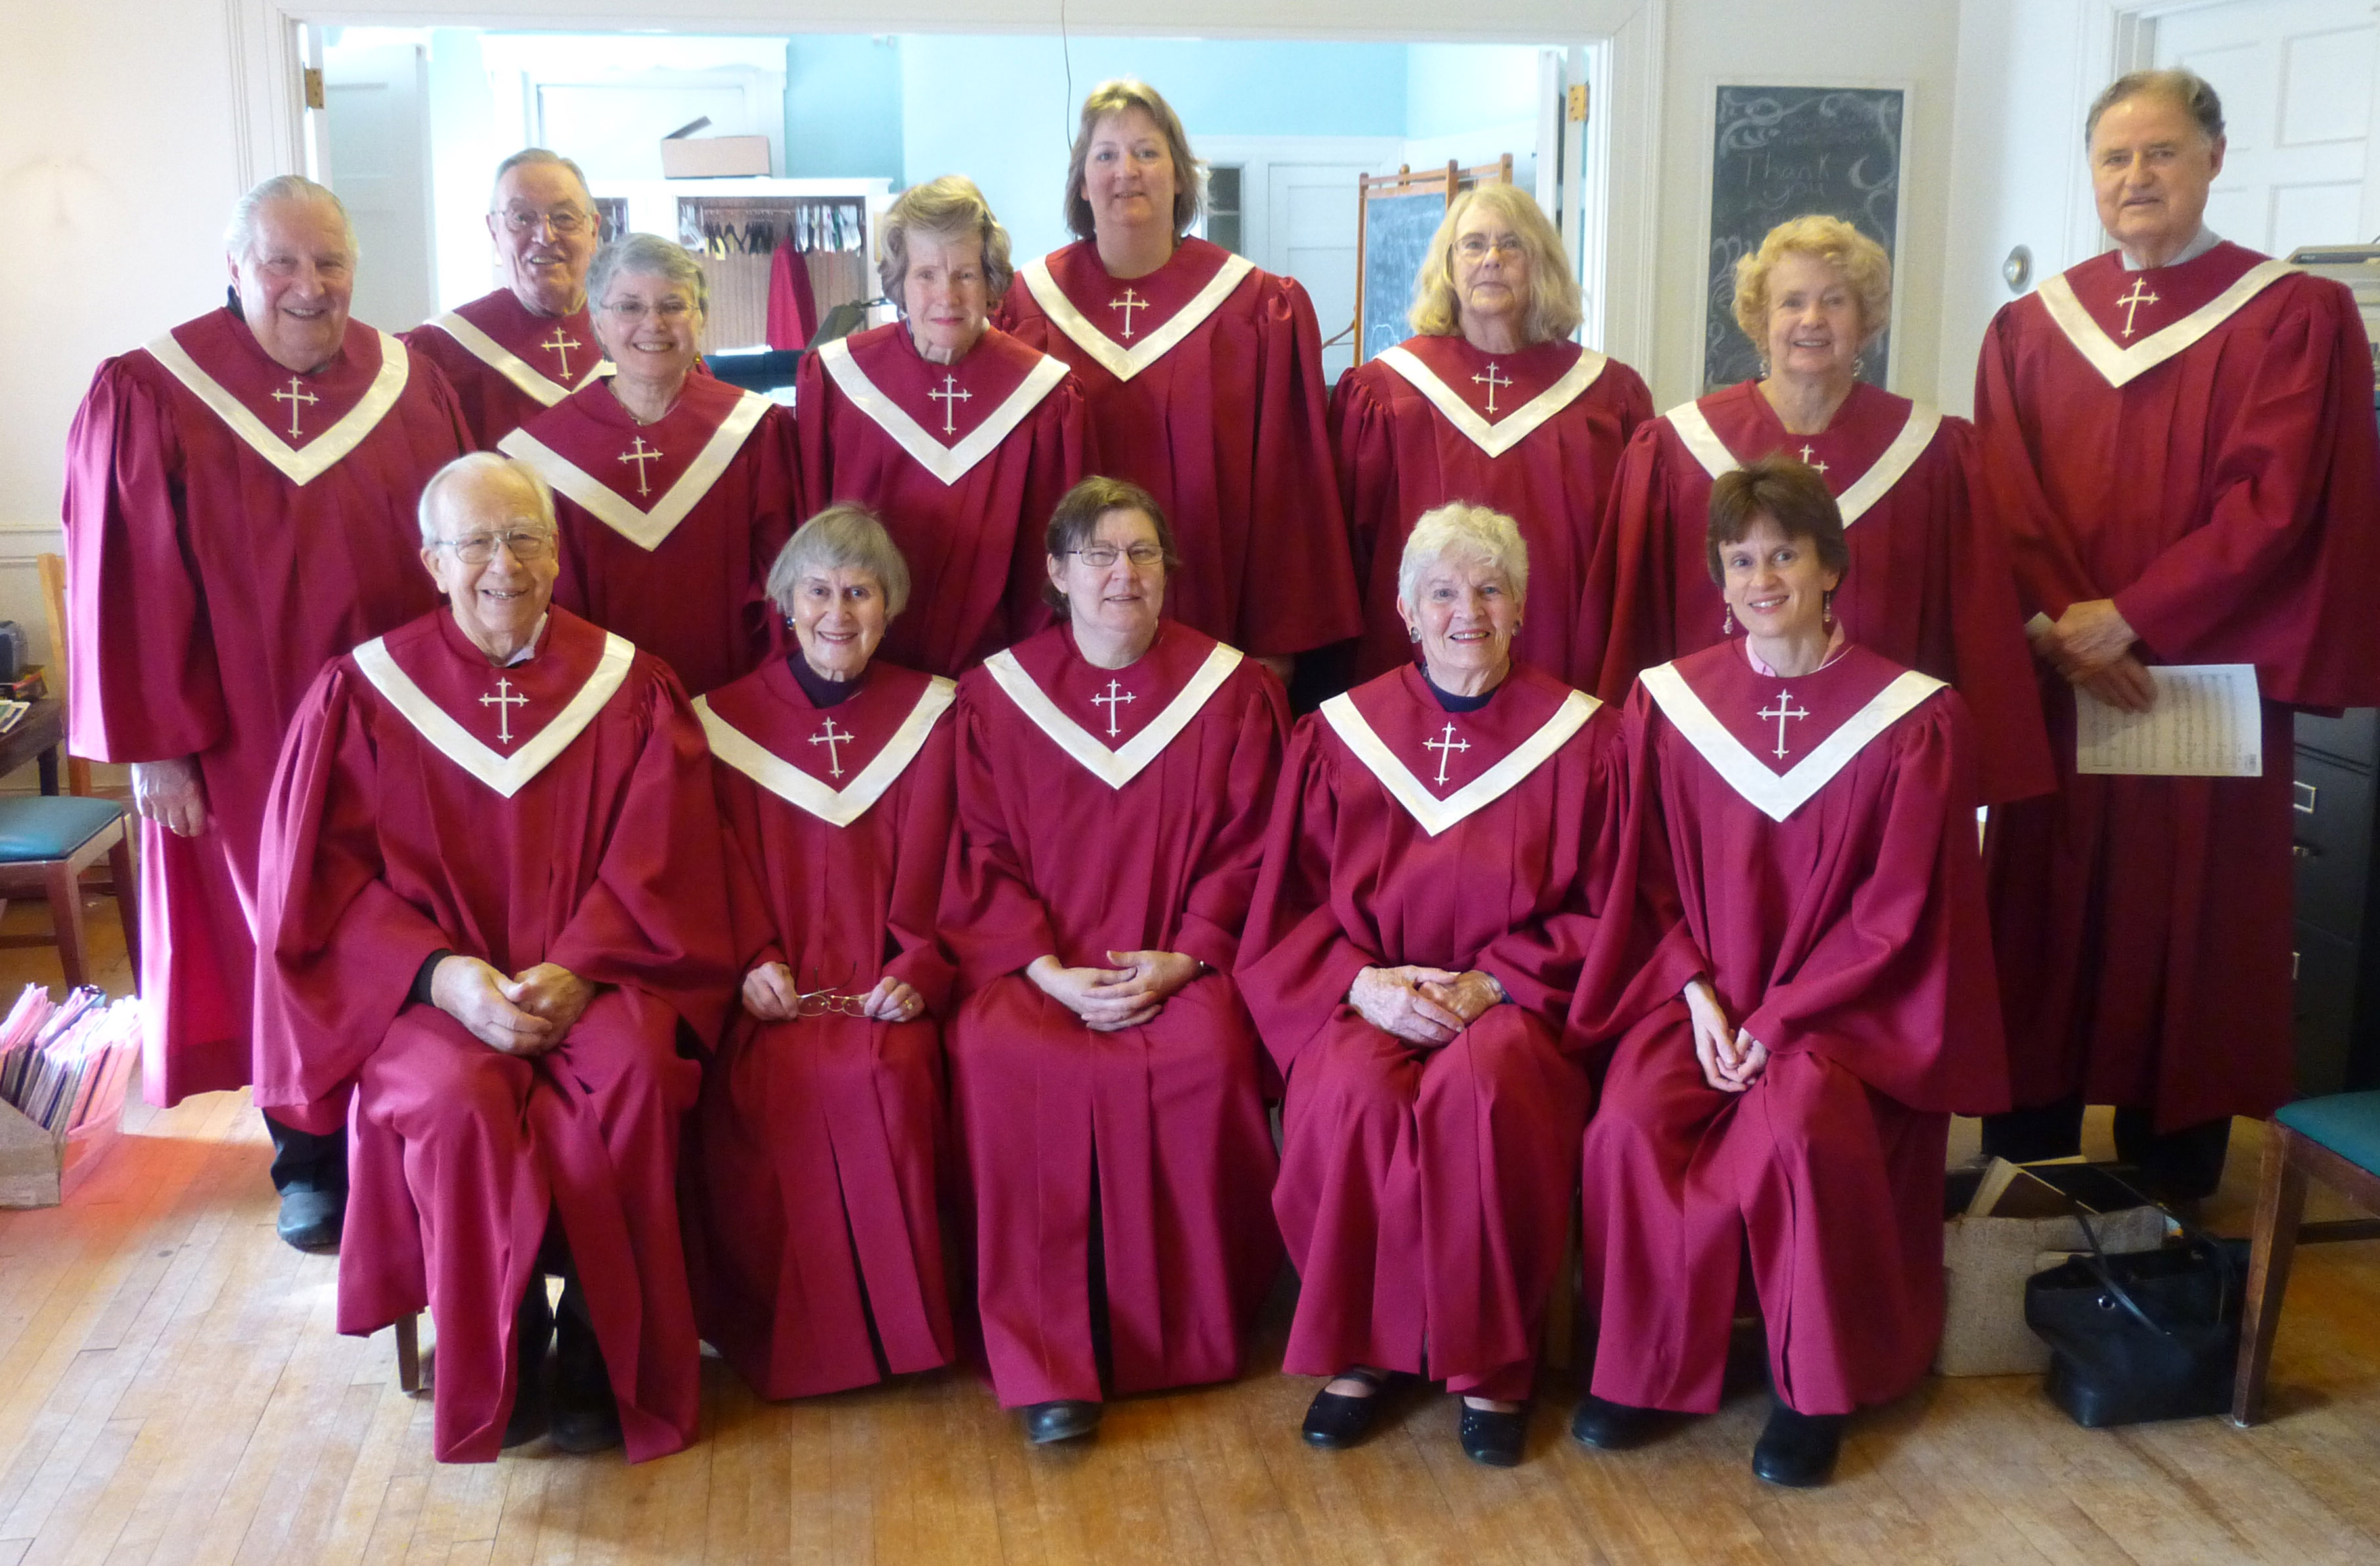 Choir Cassock Selecting The Most Appropriate Choir Robes For Adults 8choir15